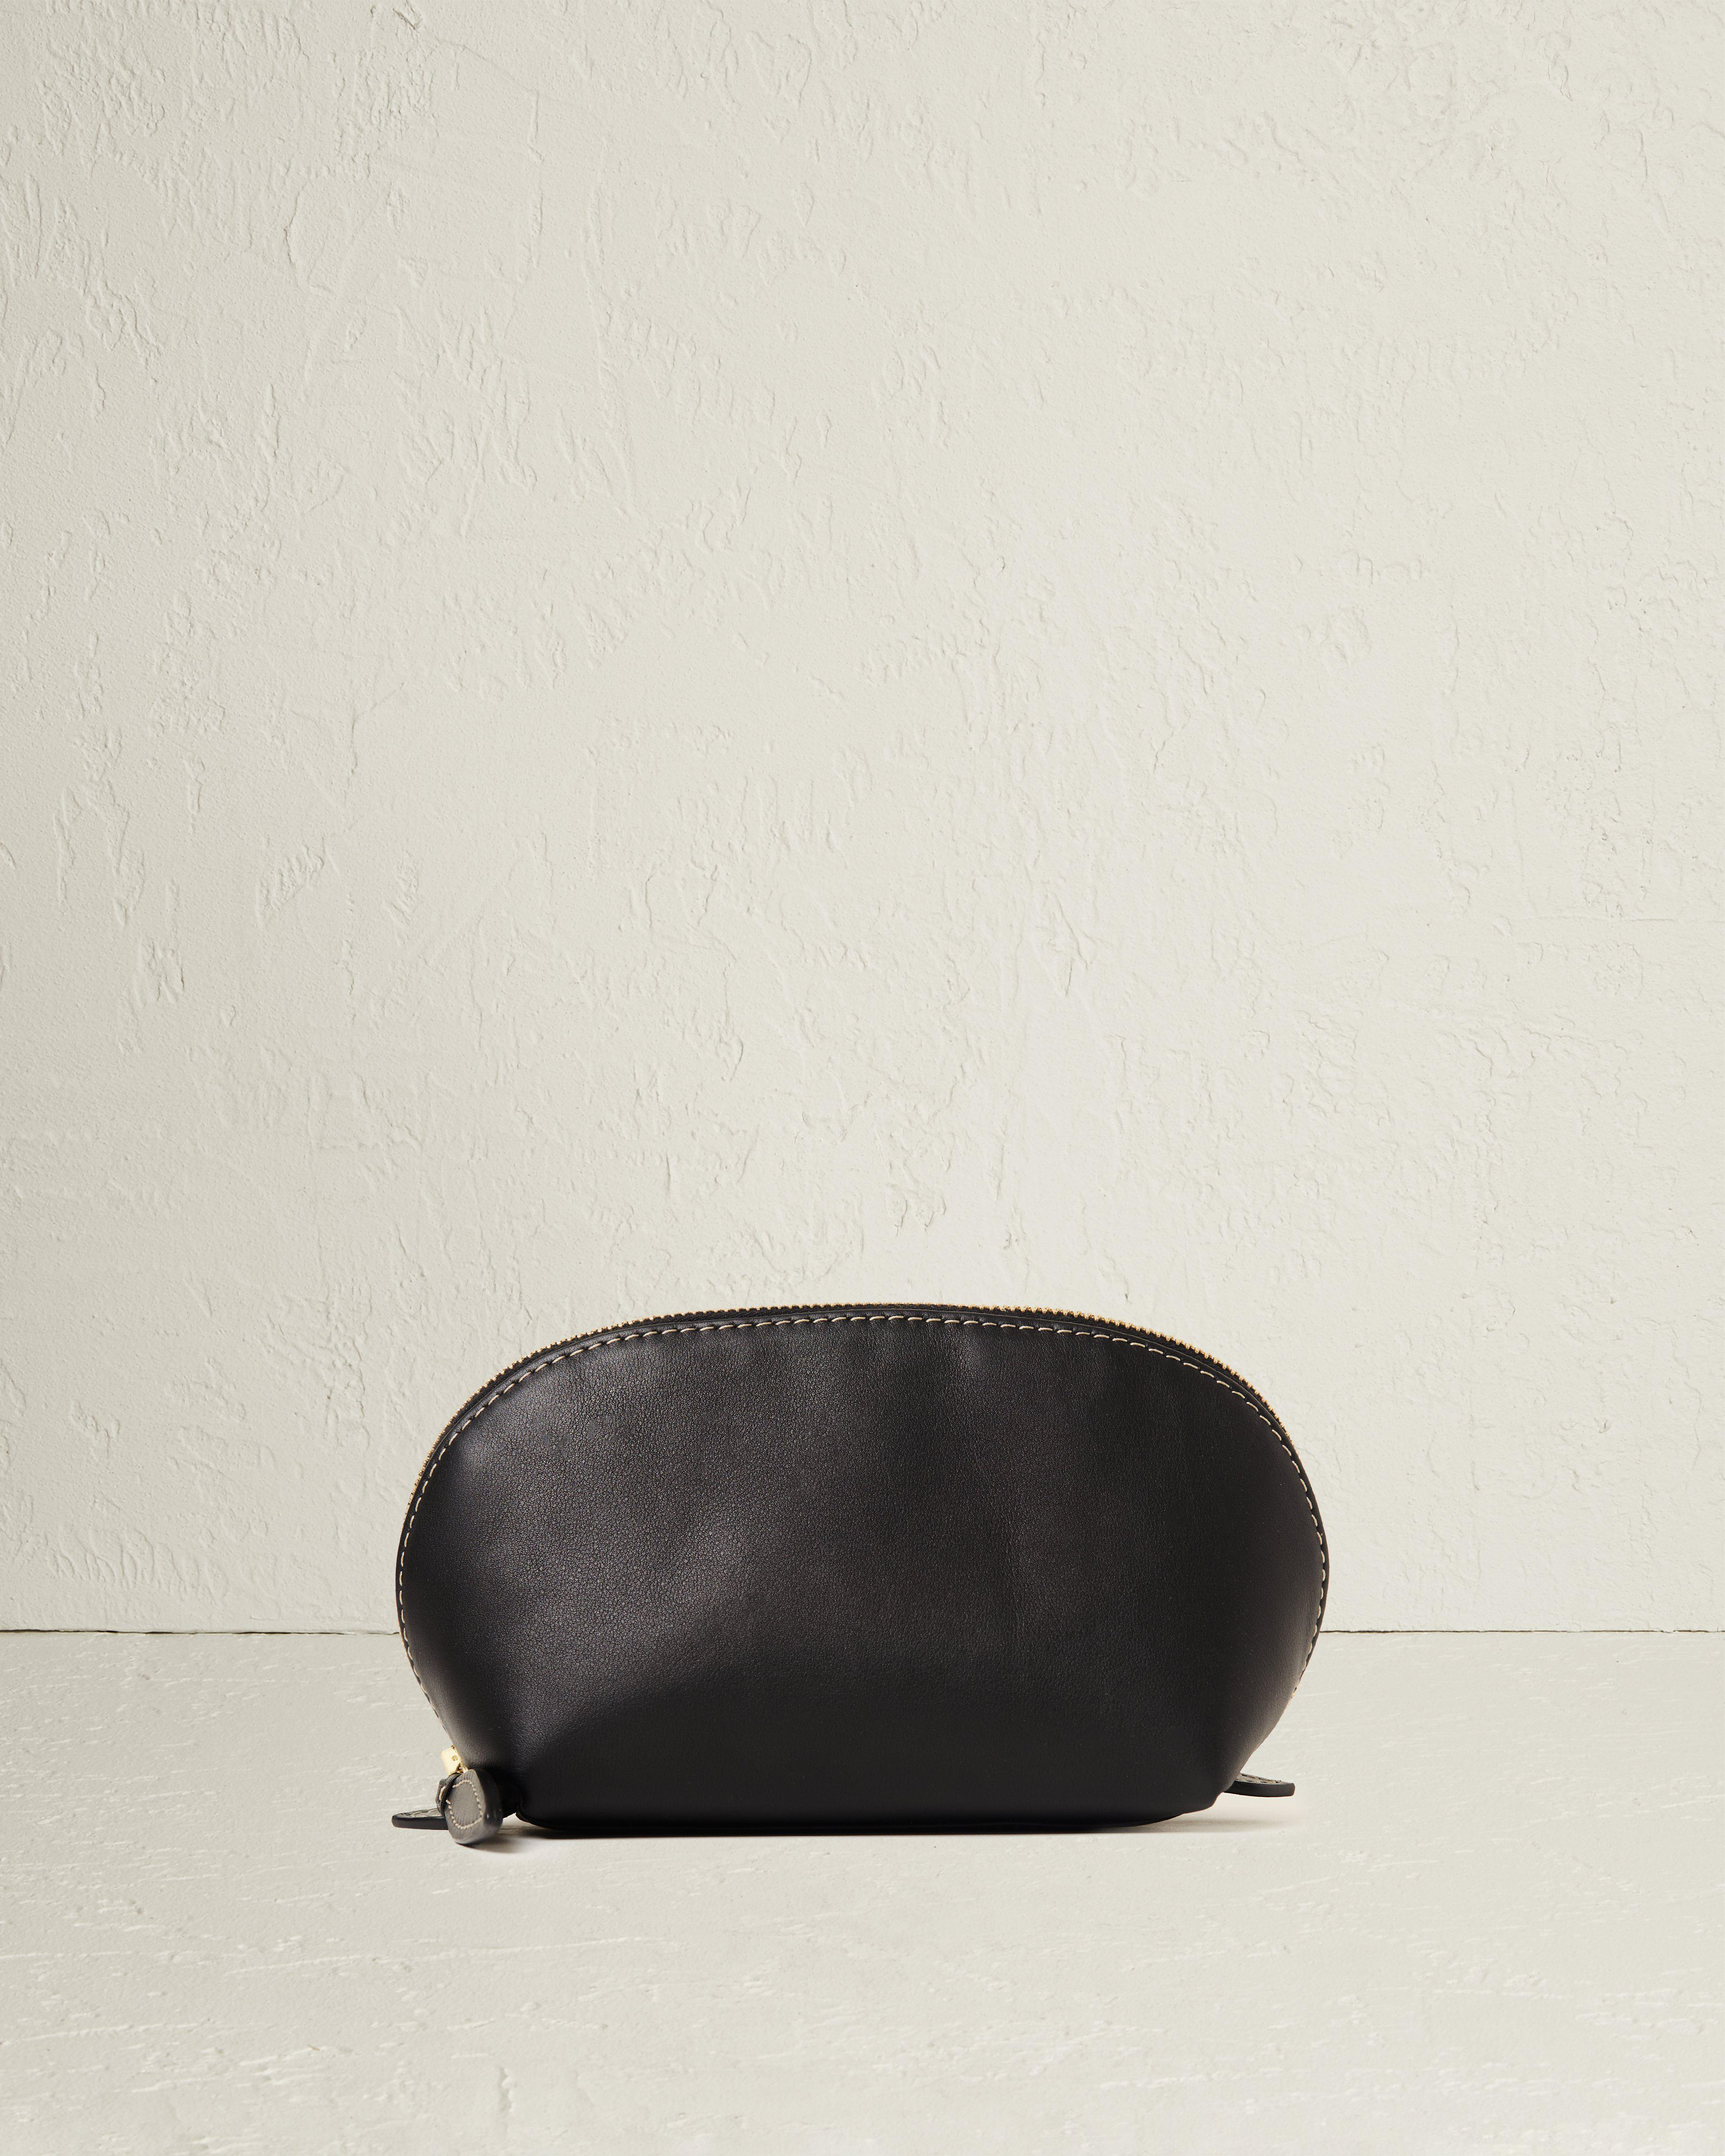 The Voyage Set Small in Nappa Leather